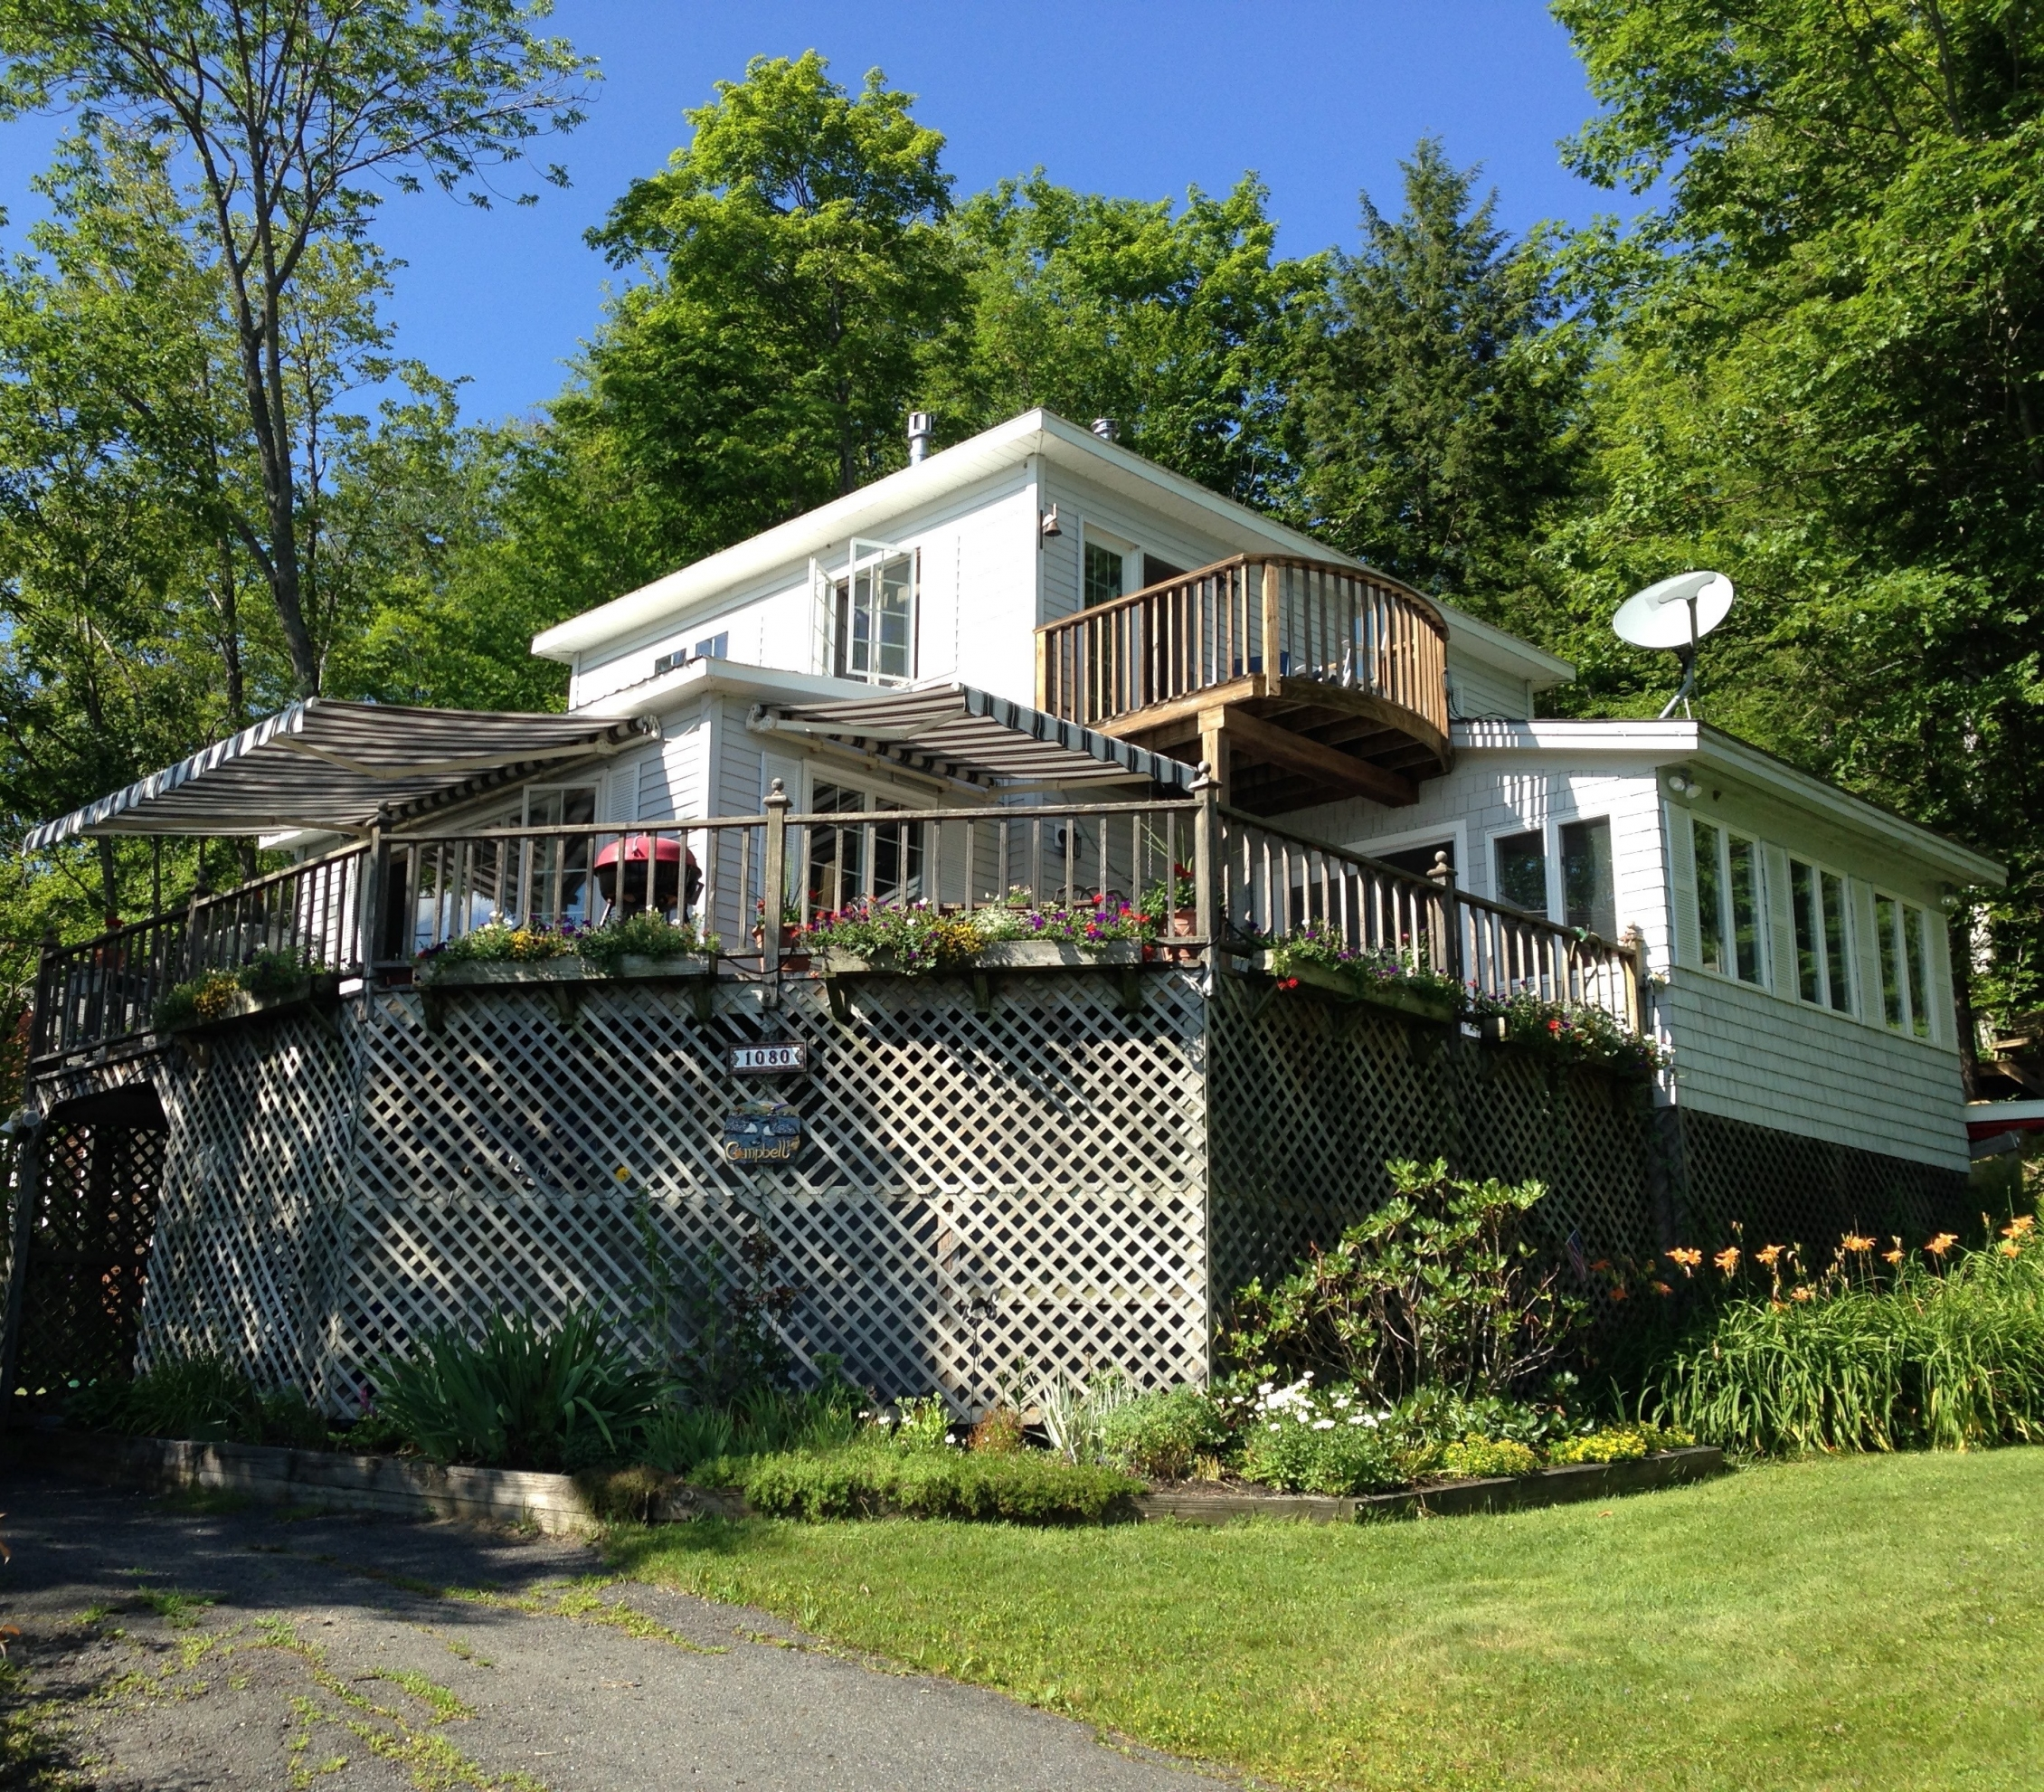 Single Family Home for Sale at 1080 Goose Pond Road Rd, Canaan Canaan, New Hampshire, 03741 United States